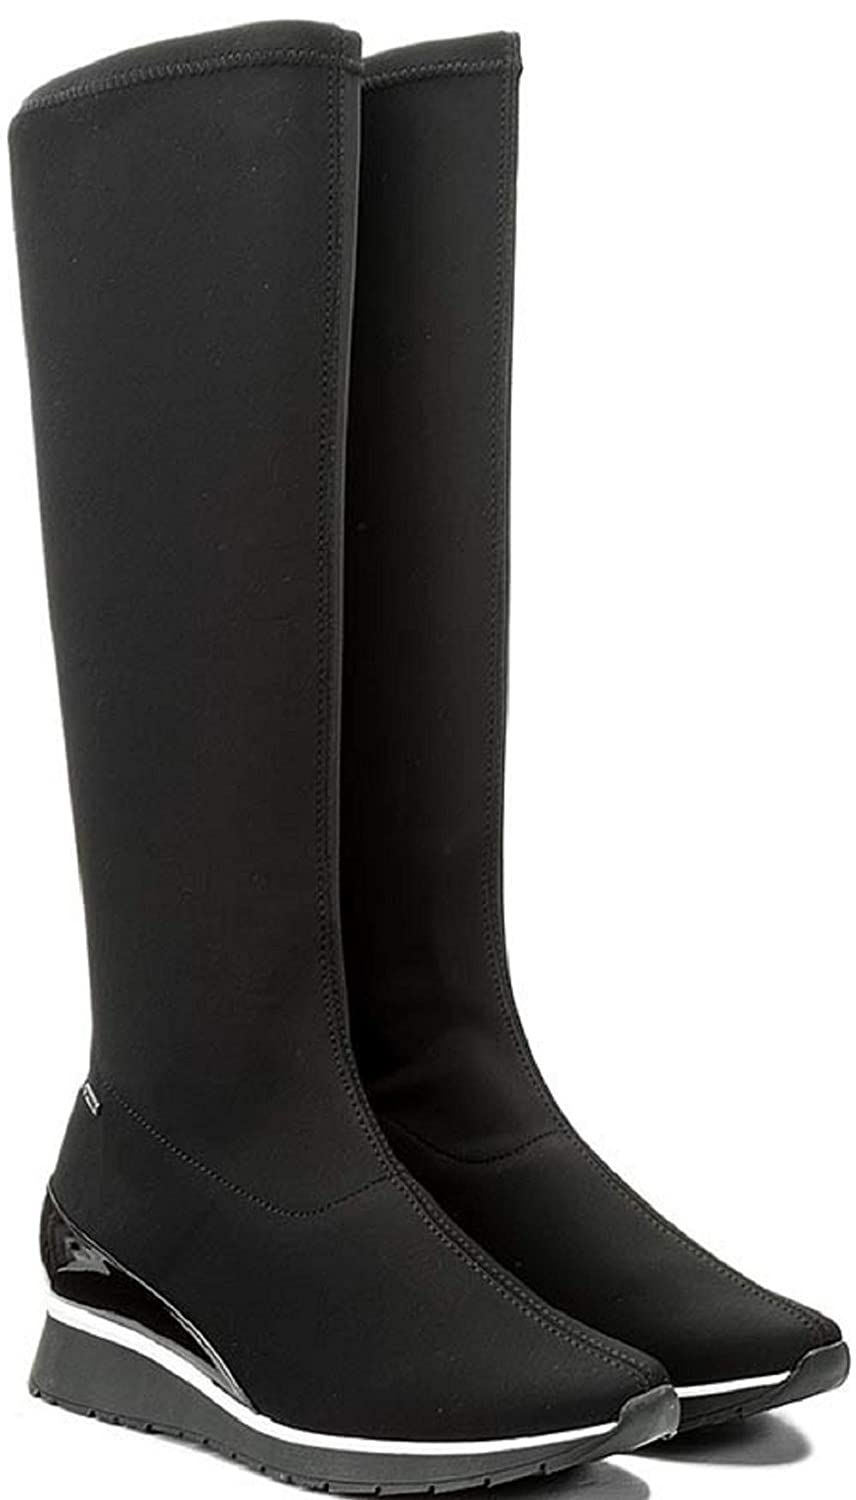 Högl High (0100) Impact, Bottes Hautes Bottes Femme High Noir (0100) 75aebf7 - conorscully.space